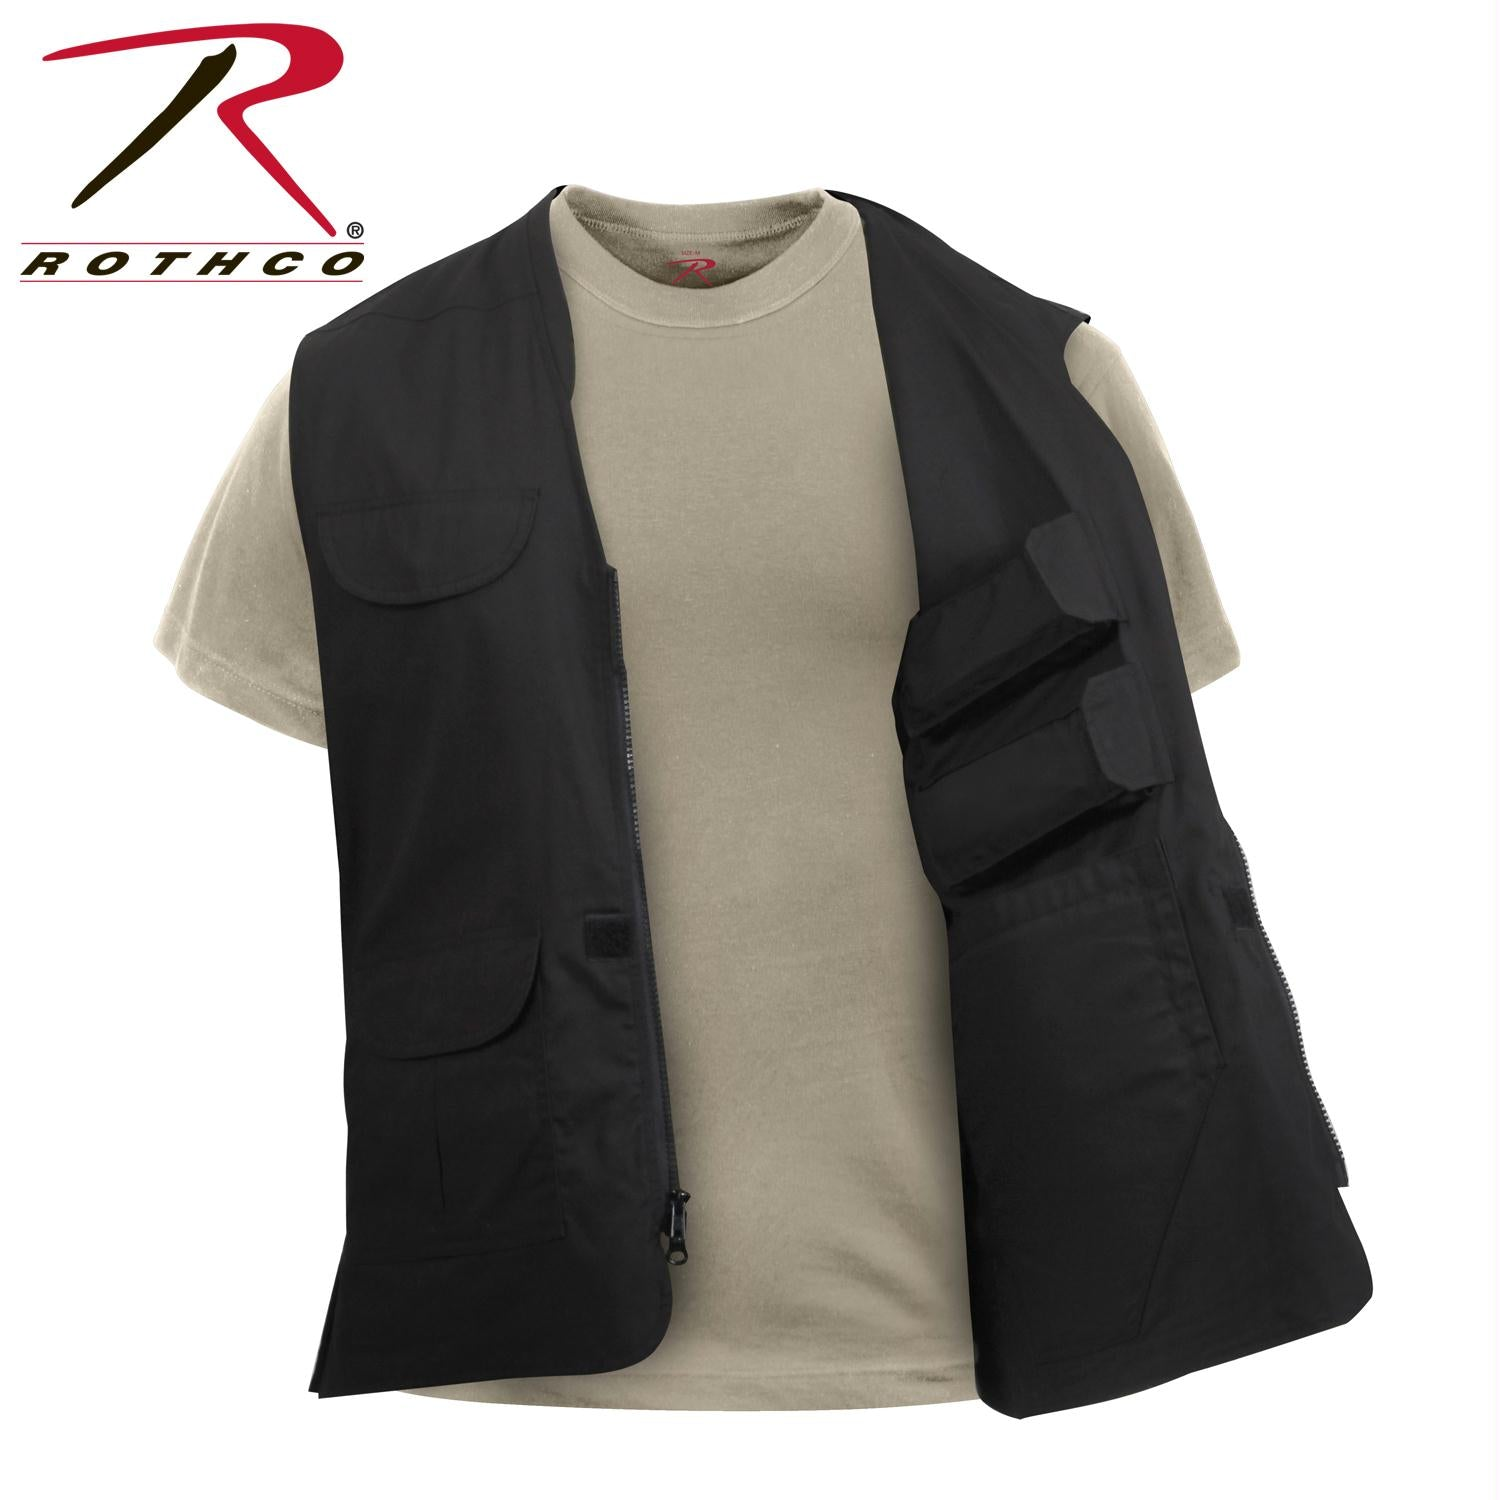 Rothco Lightweight Professional Concealed Carry Vest - Black / 3XL